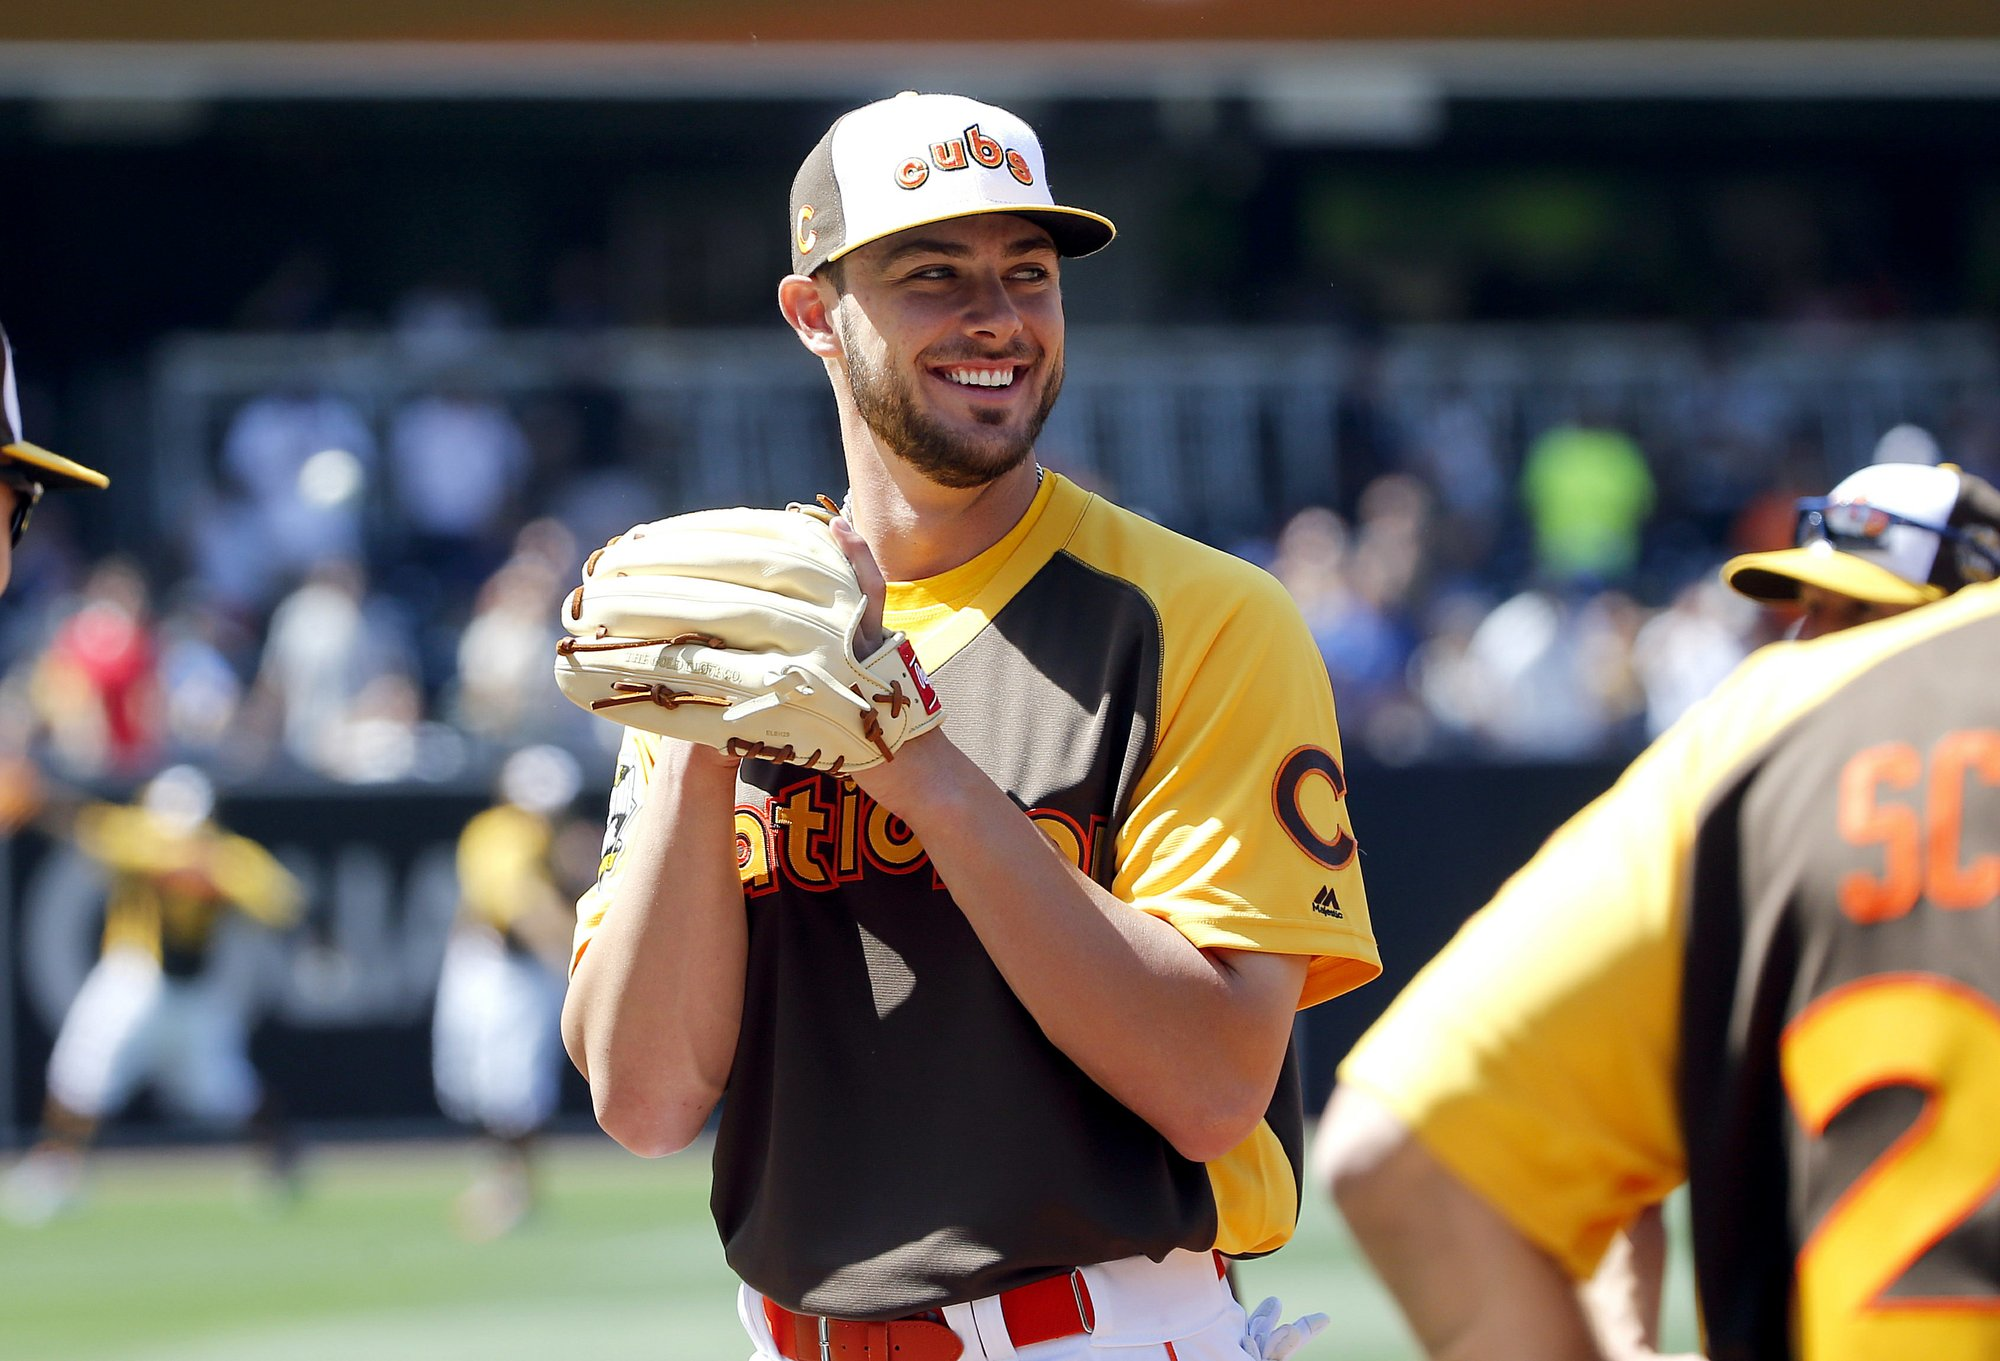 5d46b33c21b2ba National League's Kris Bryant, of the Chicago Cubs, laughs with teammates  prior to the MLB baseball All-Star Home Run Derby, Monday, July 11, 2016,  ...